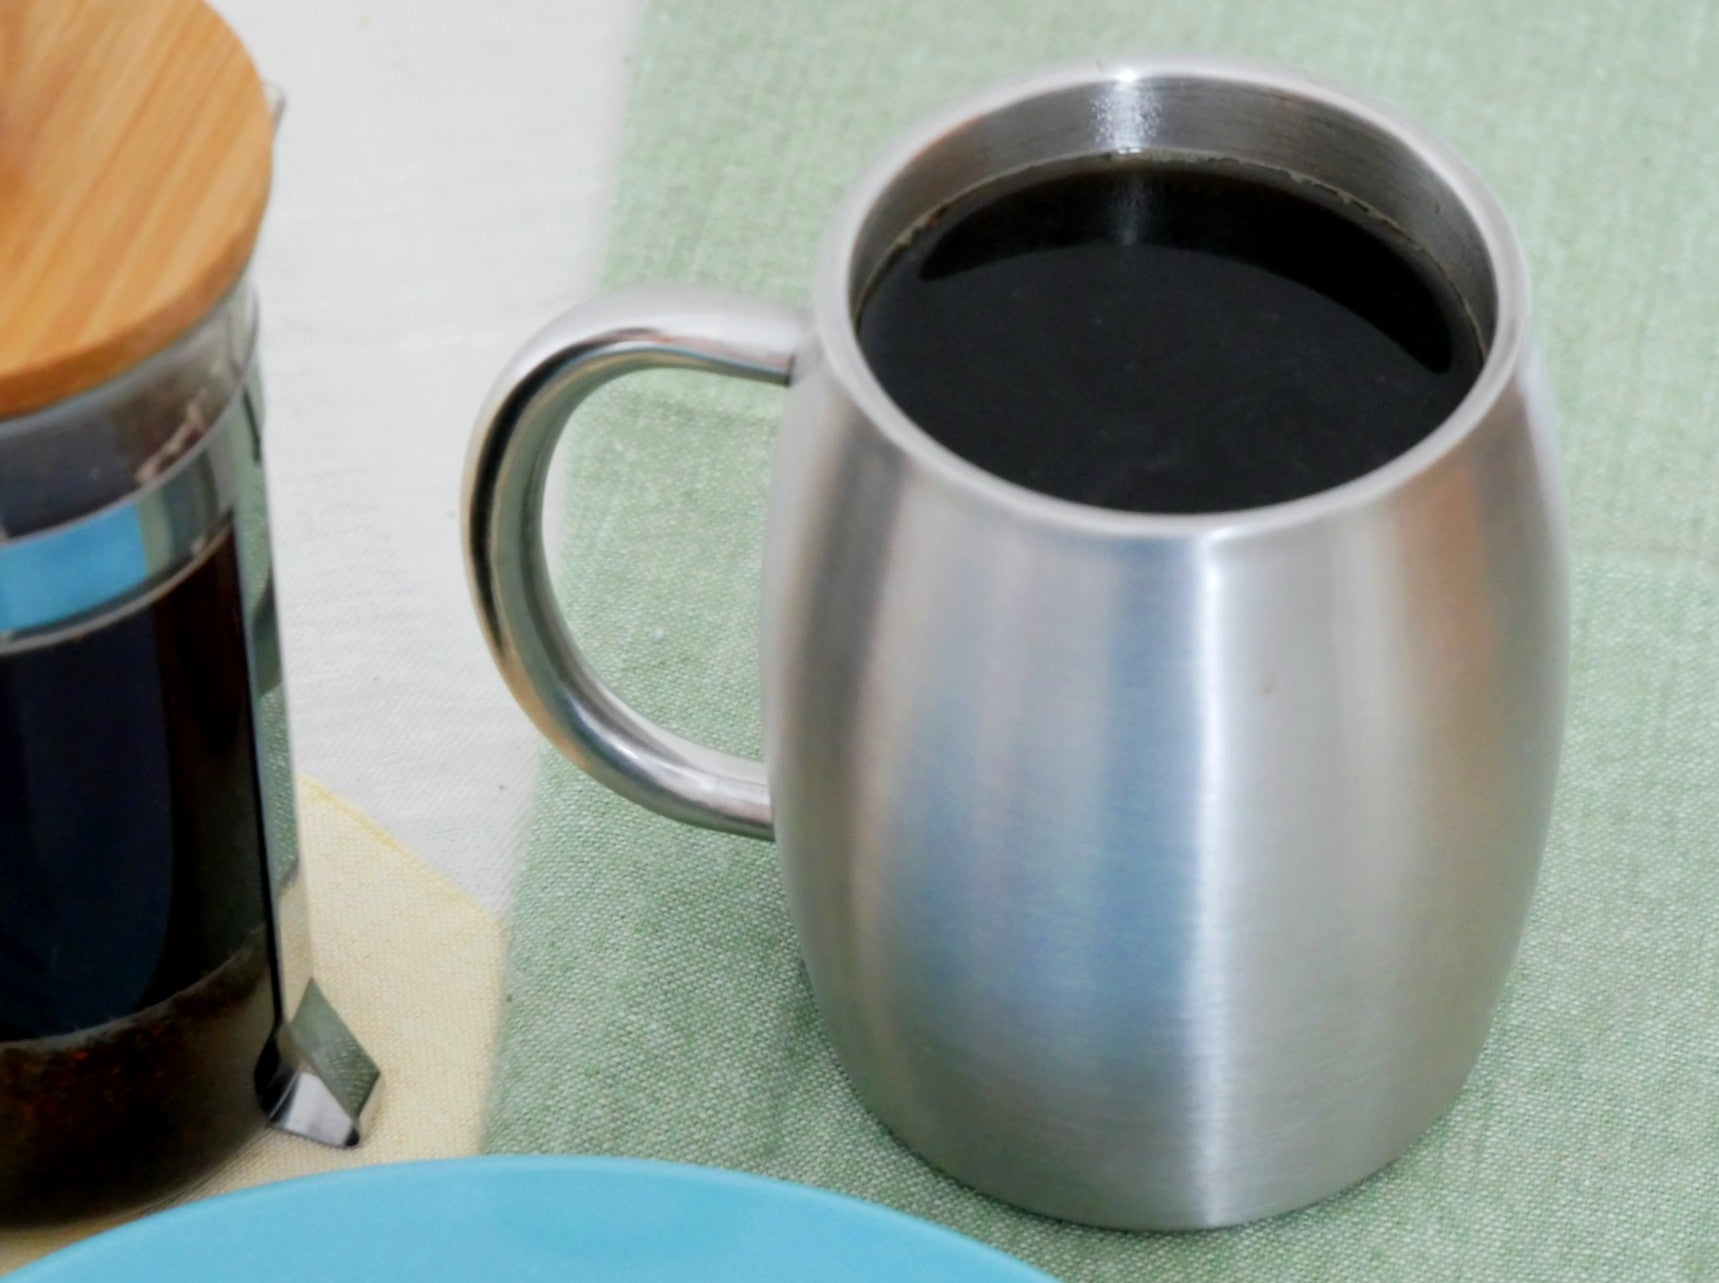 400ml Stainless Steel Mug Cup